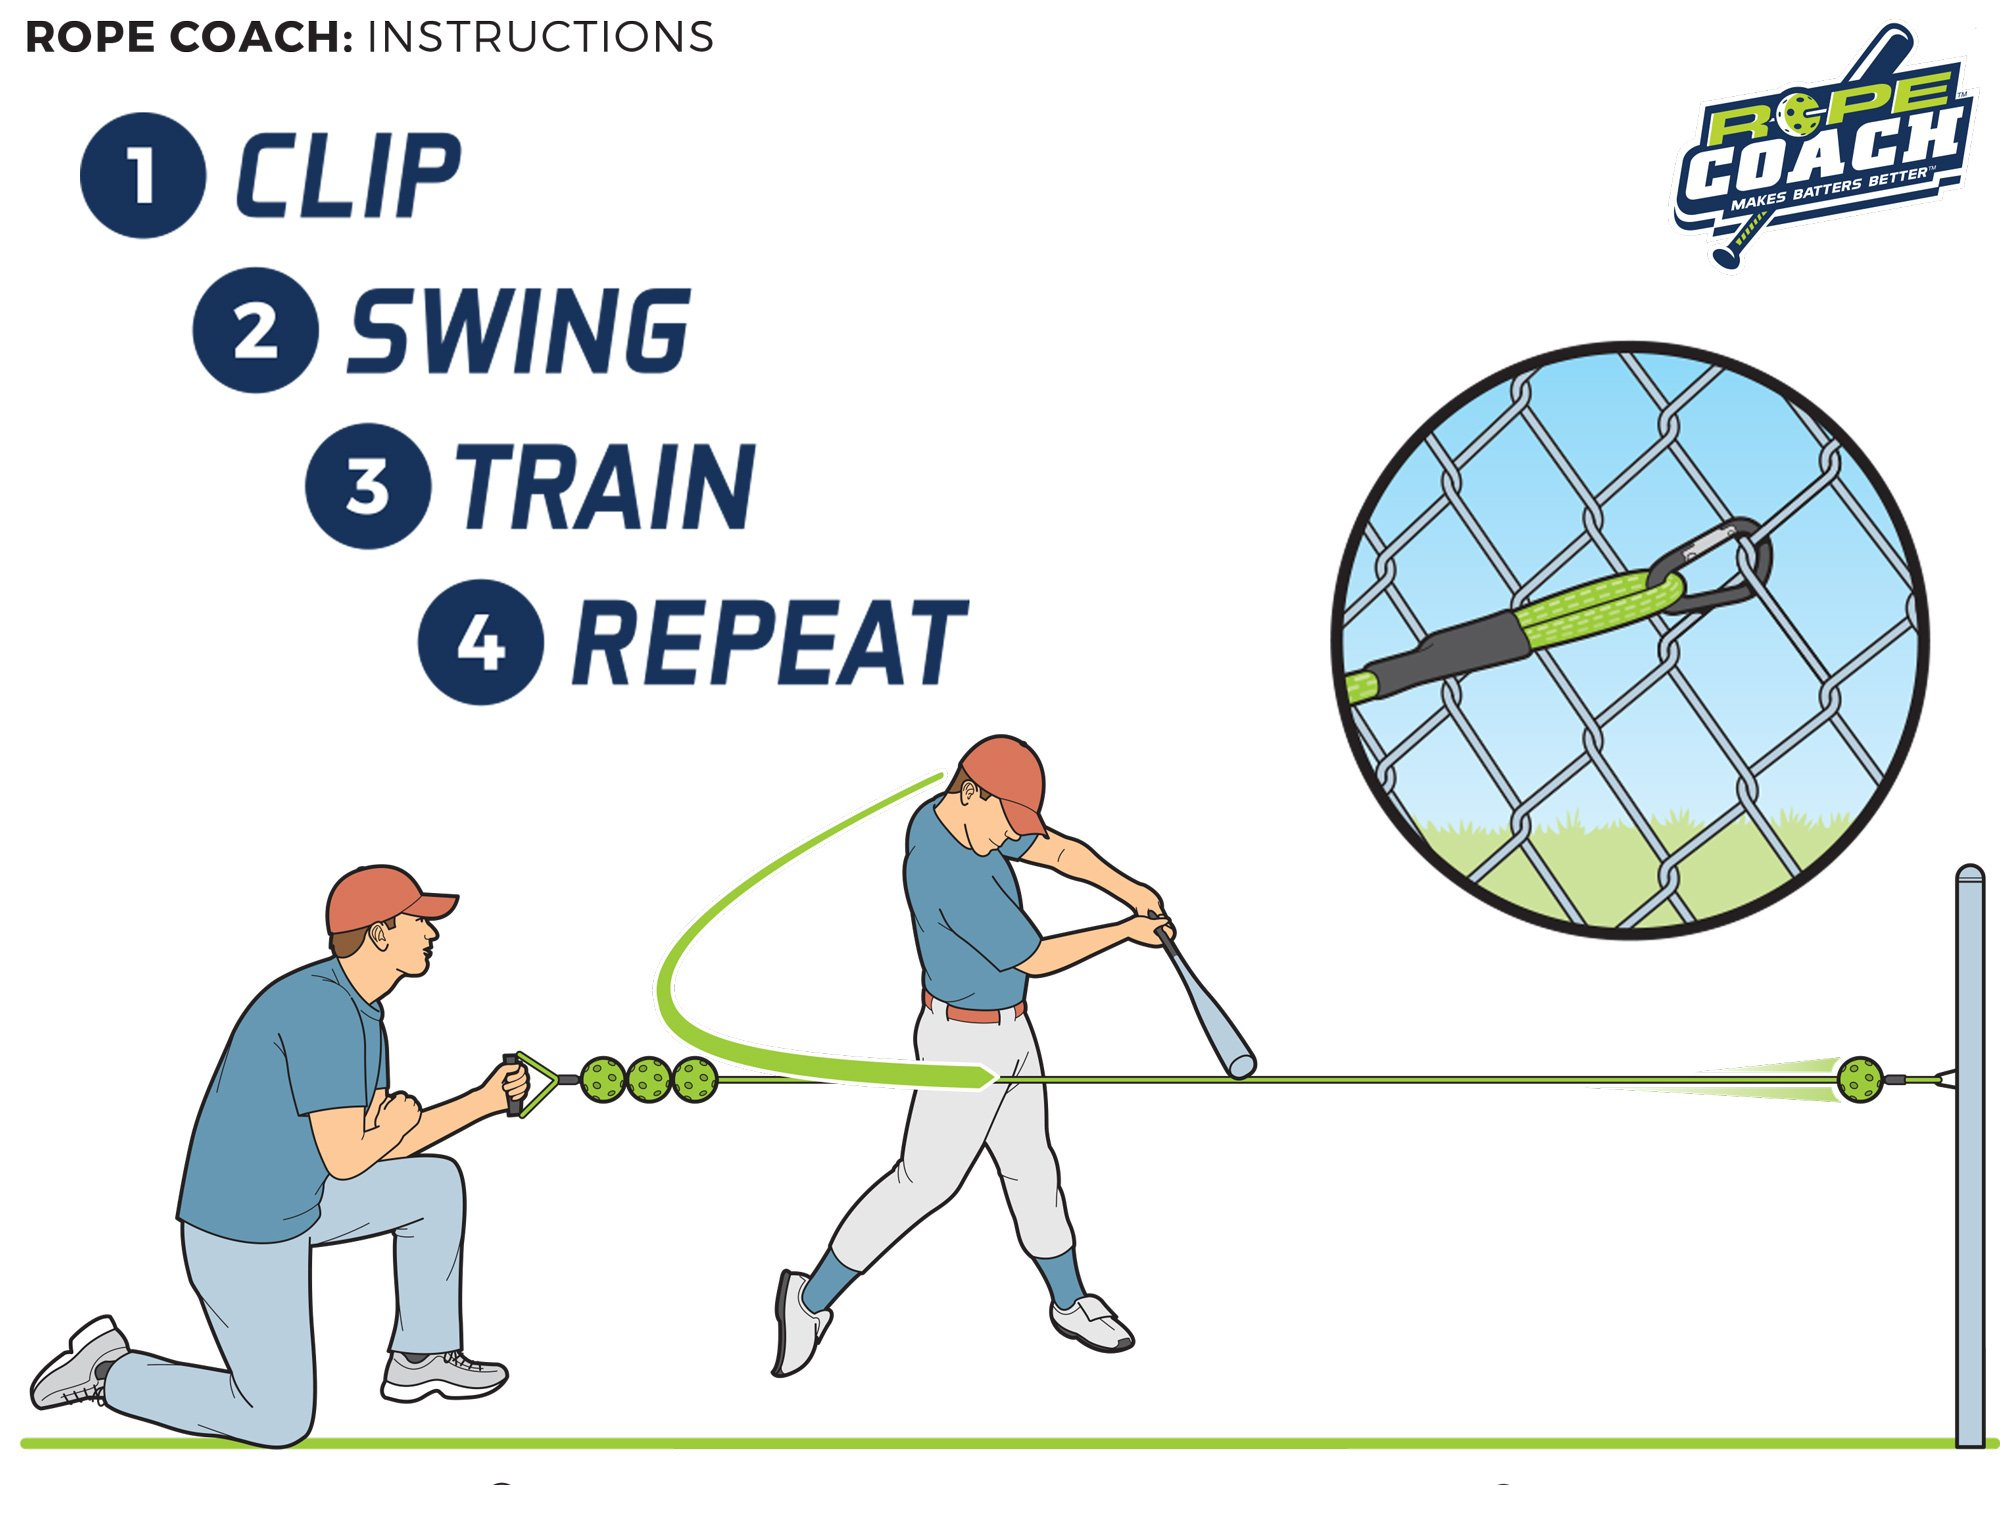 Rope Coach - Softball Swing Trainer by Rope Coach